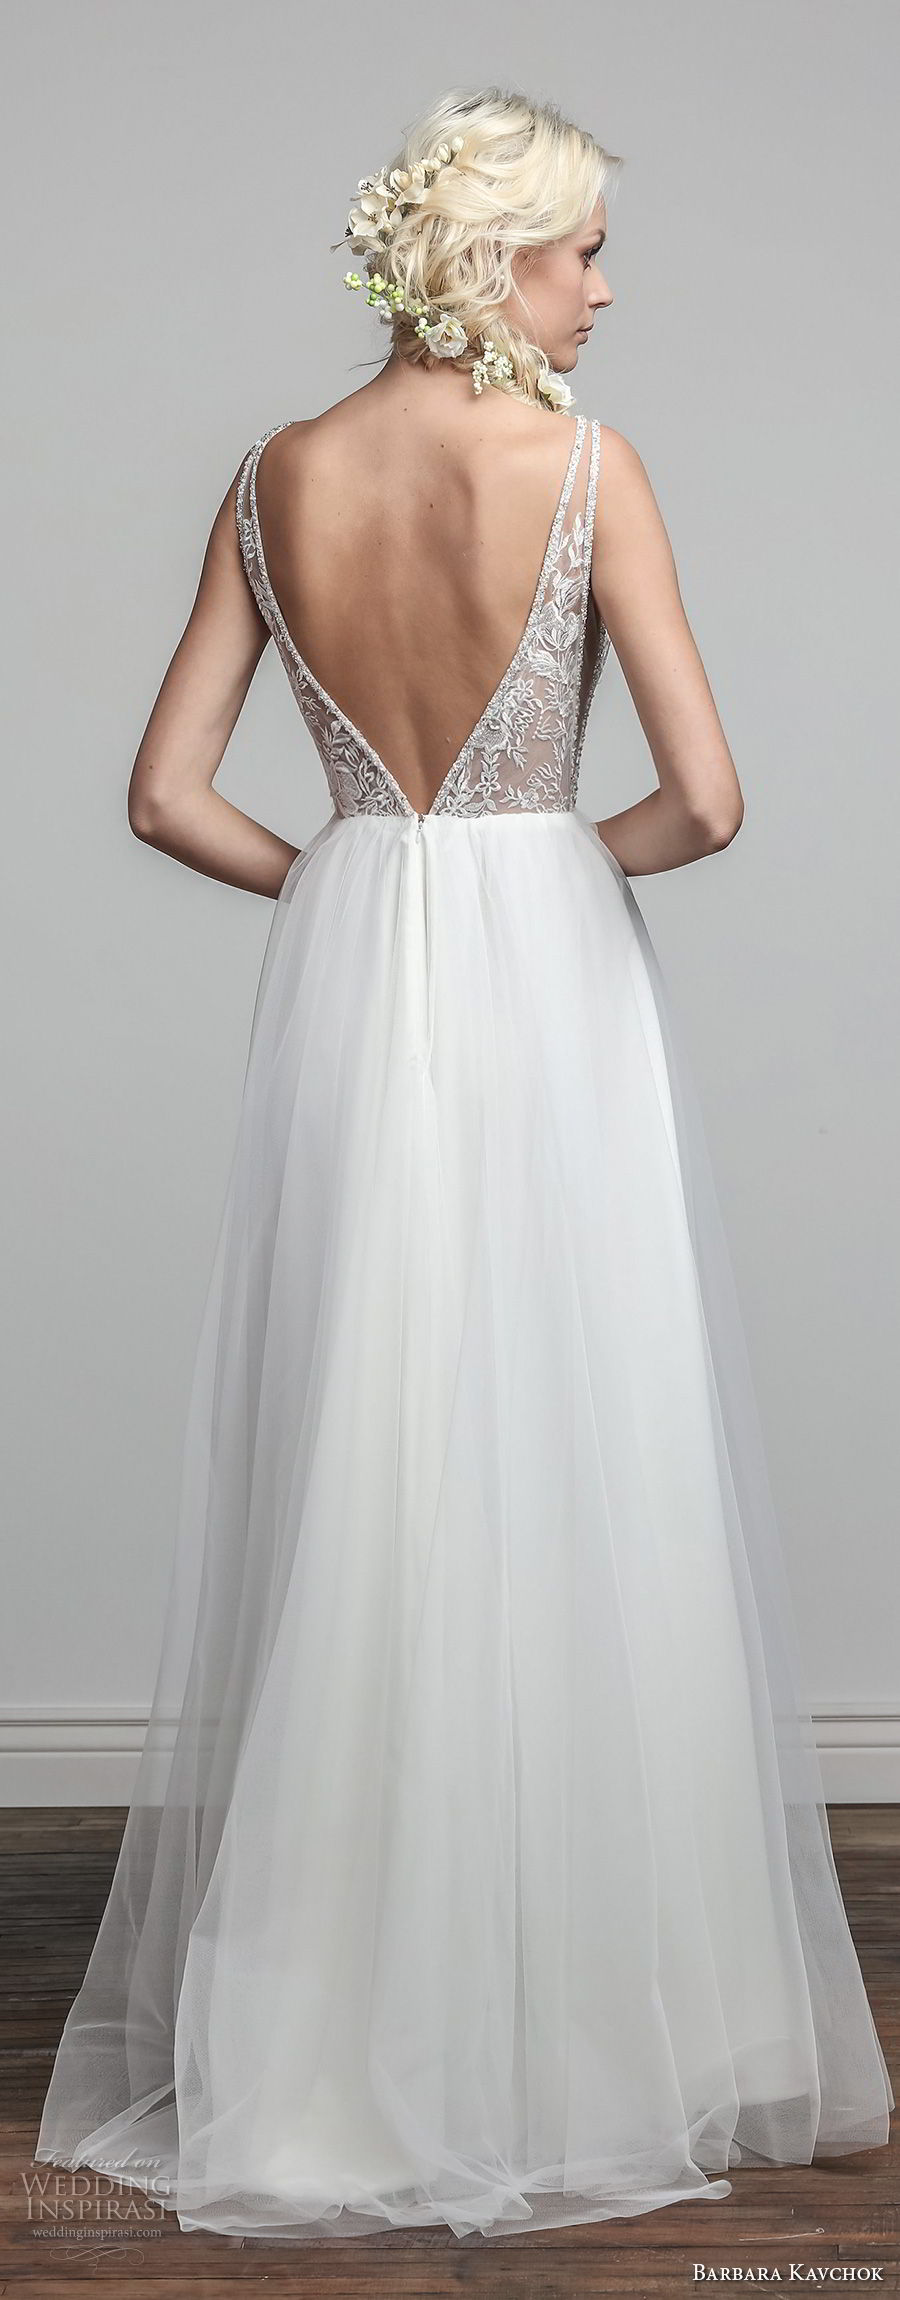 barbara kavchok spring 2018 bridal sleeveless deep v neck heavily embellished bodice elegant romantic a line wedding dress open v back sweep train (ivy) bv